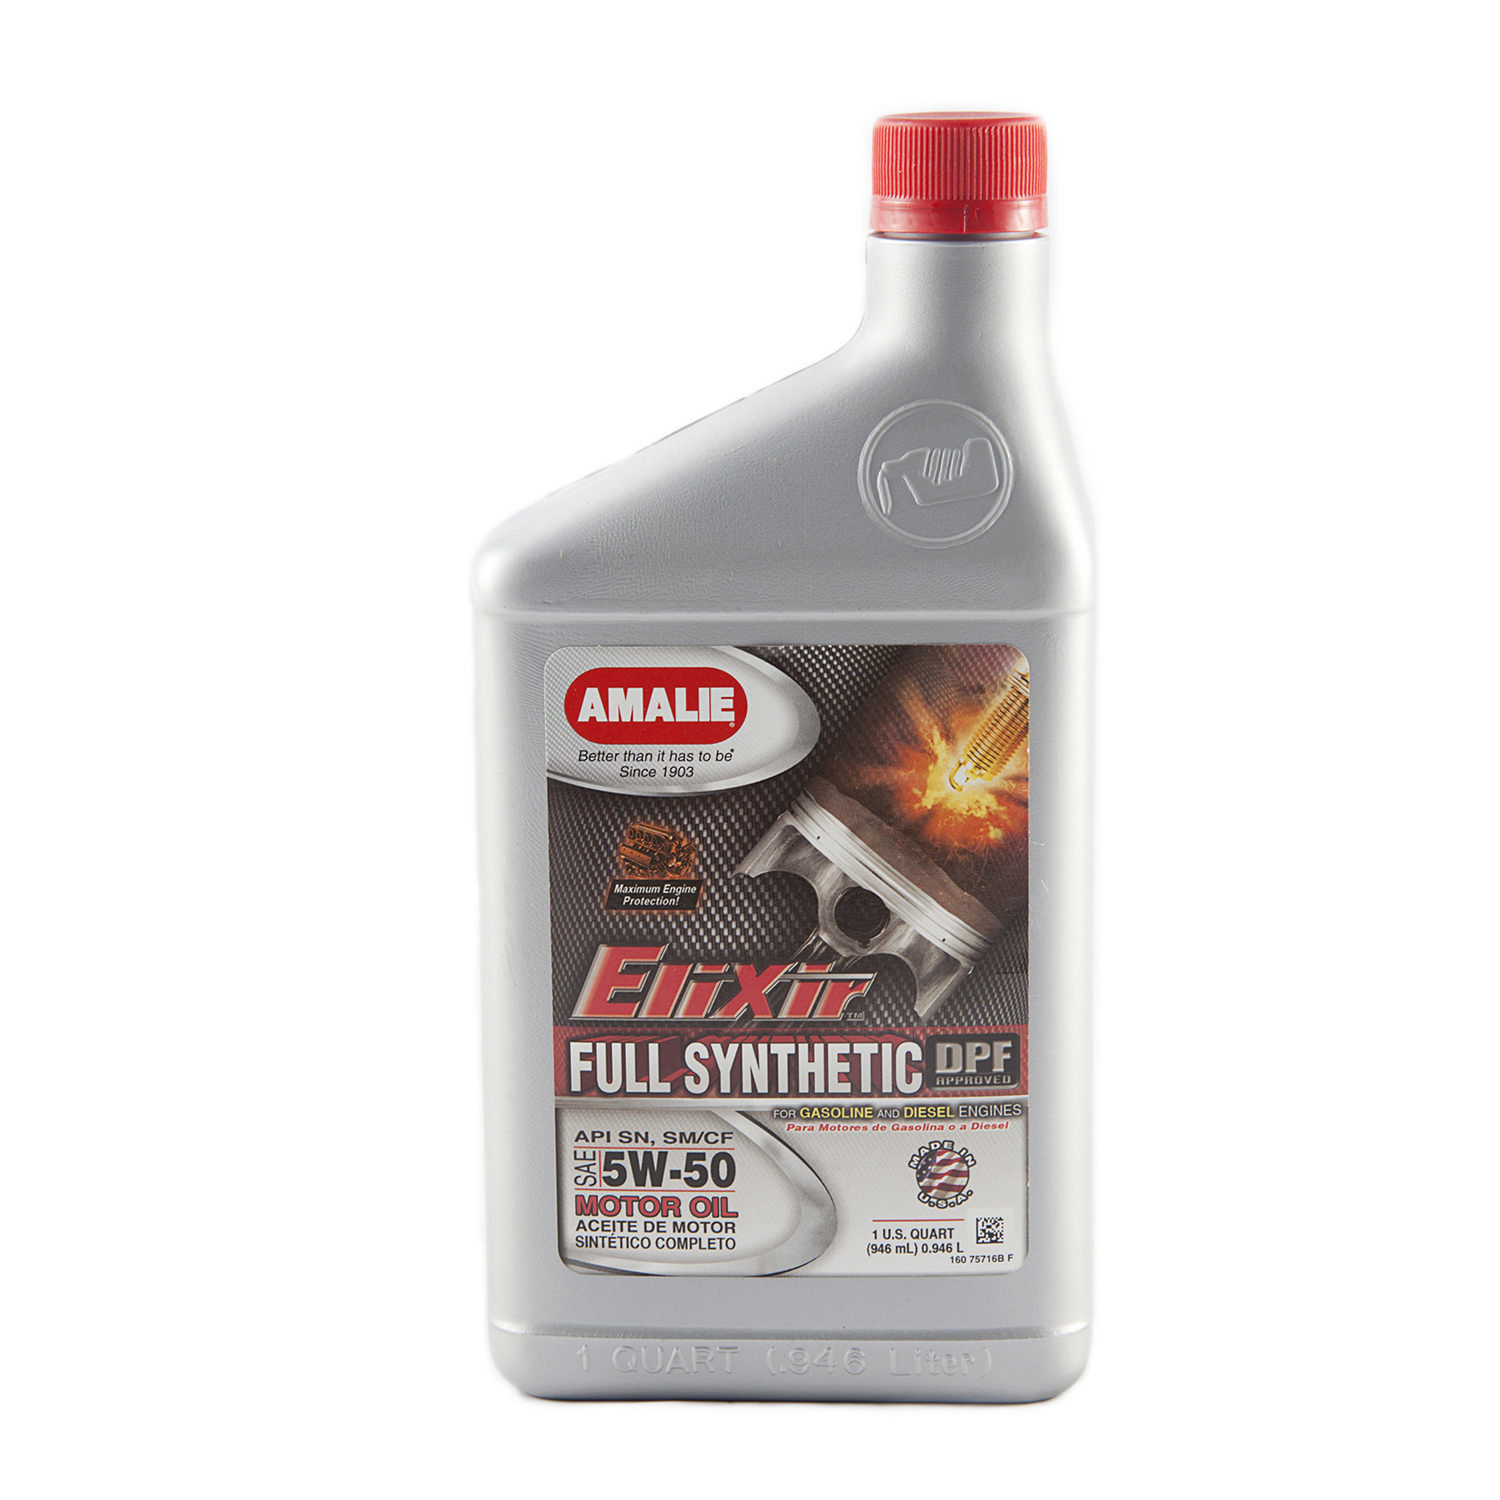 Amalie Elixir 5W50 Motor Oil 1 qt Case Of 12 P N 160-75716-56 by Amalie